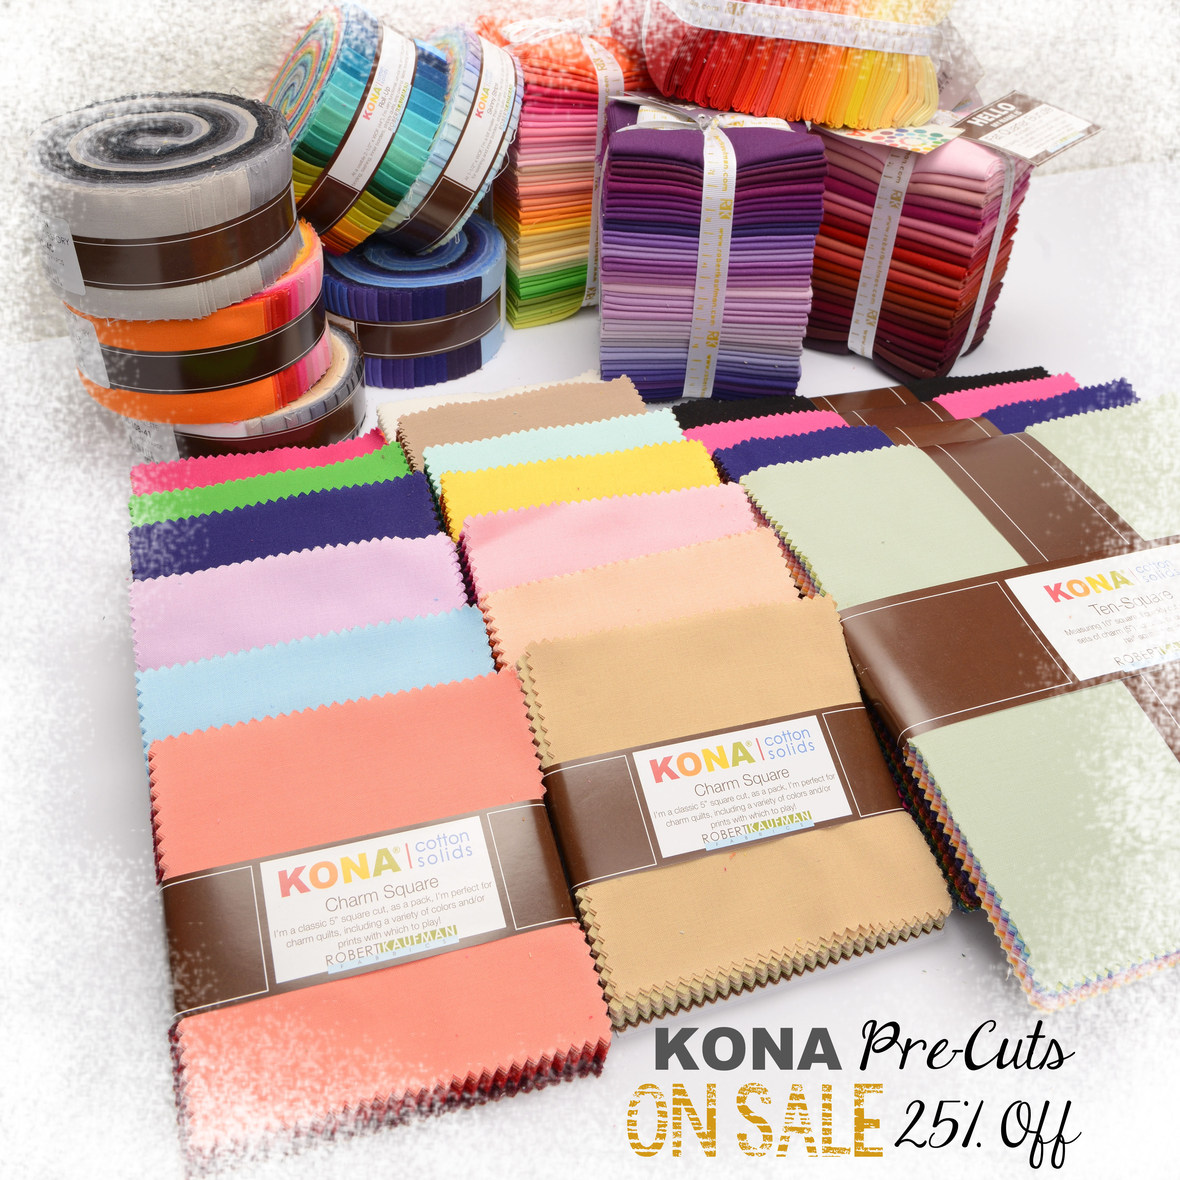 Kona Pre Cuts On Sale with frosty border